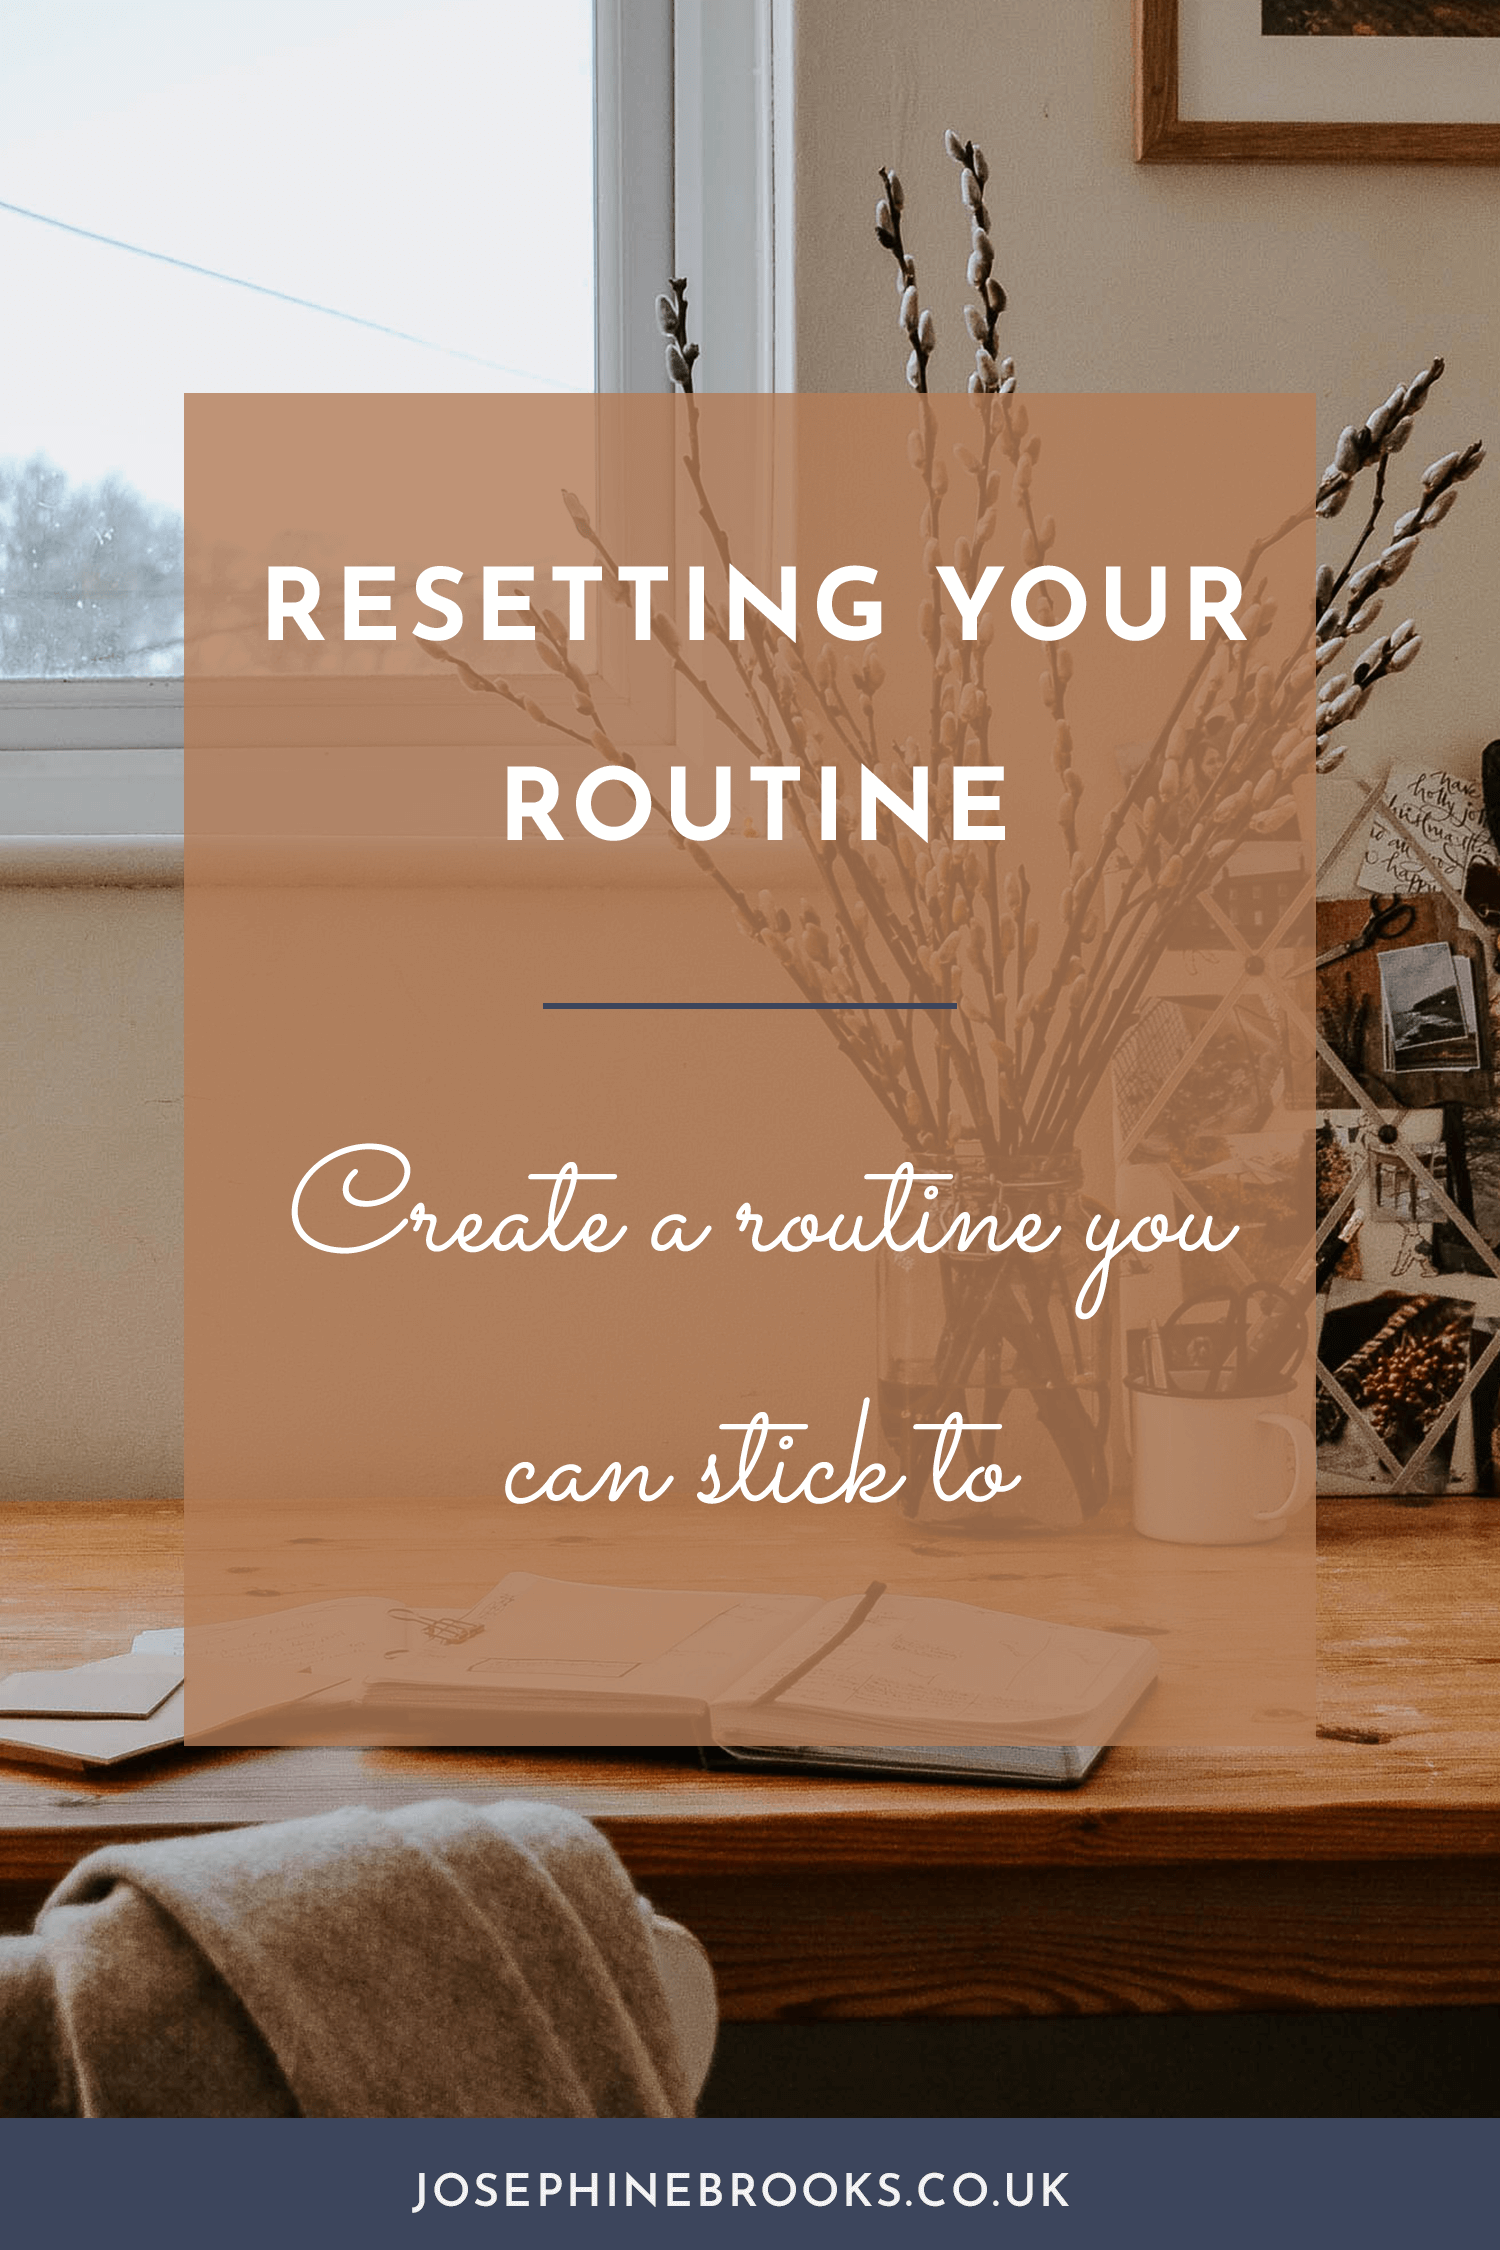 Resetting your routine and creating a routine you can stick to